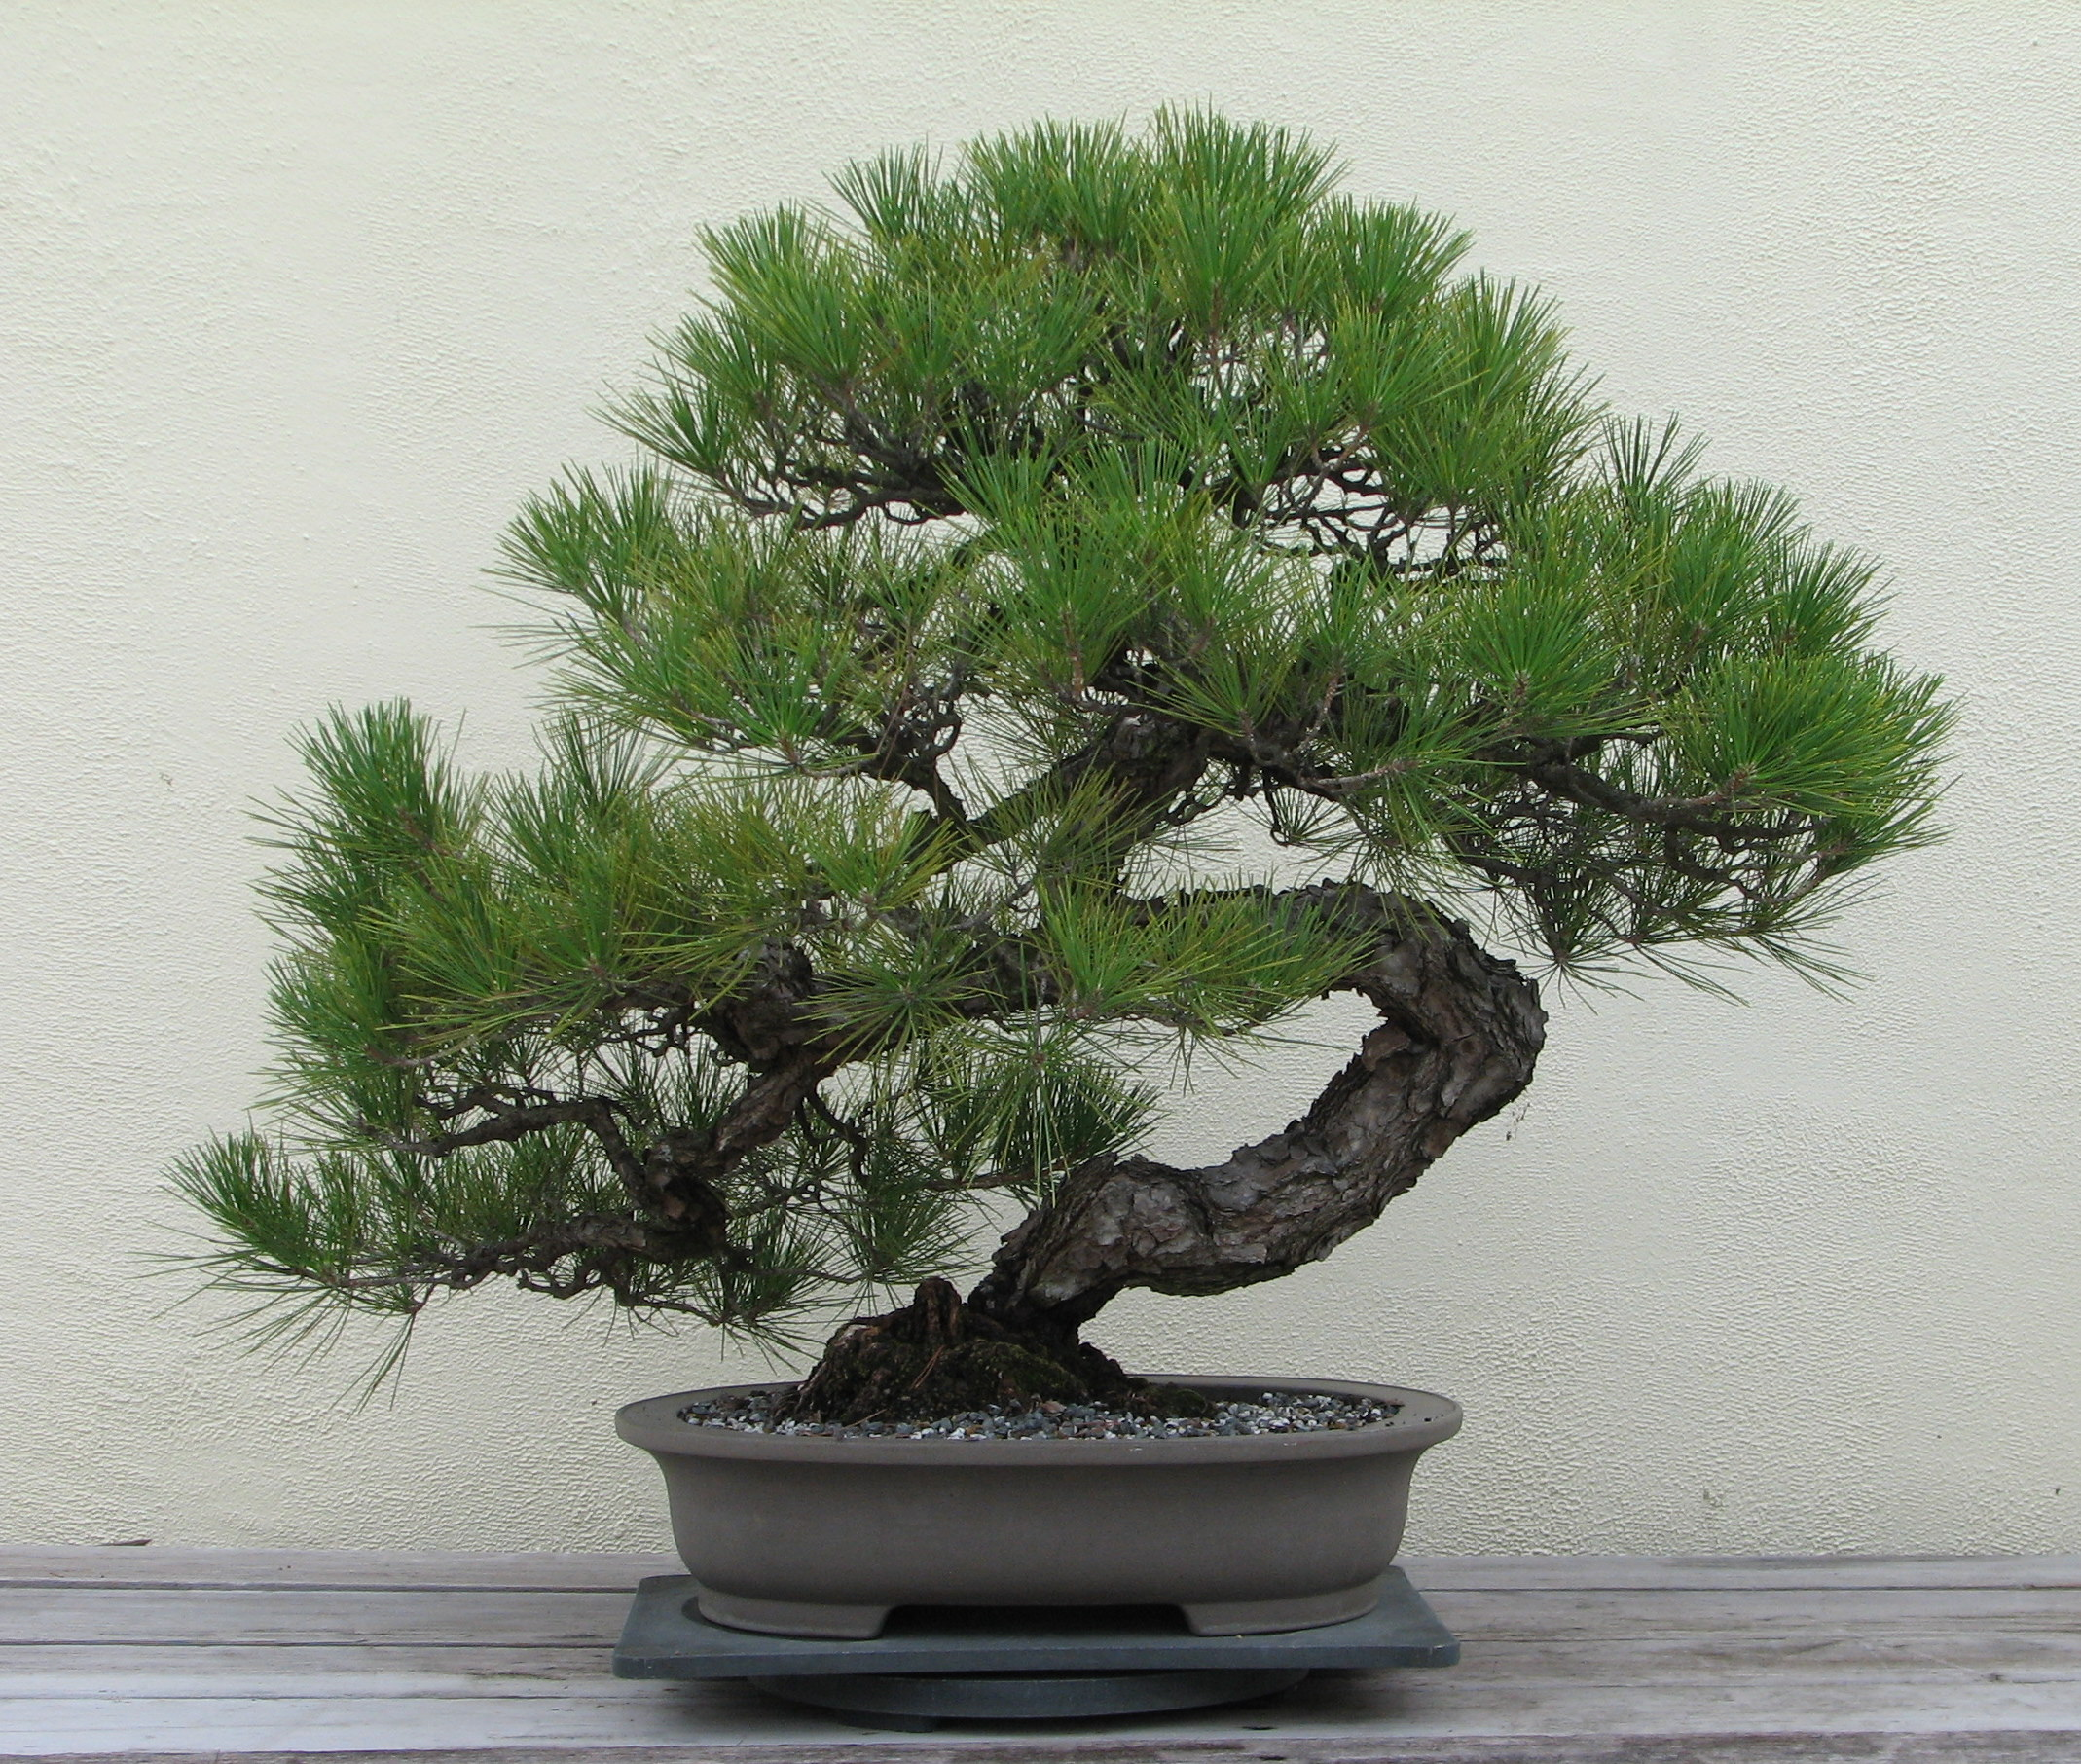 Bonsai Aarde Bonsai Wikipedia